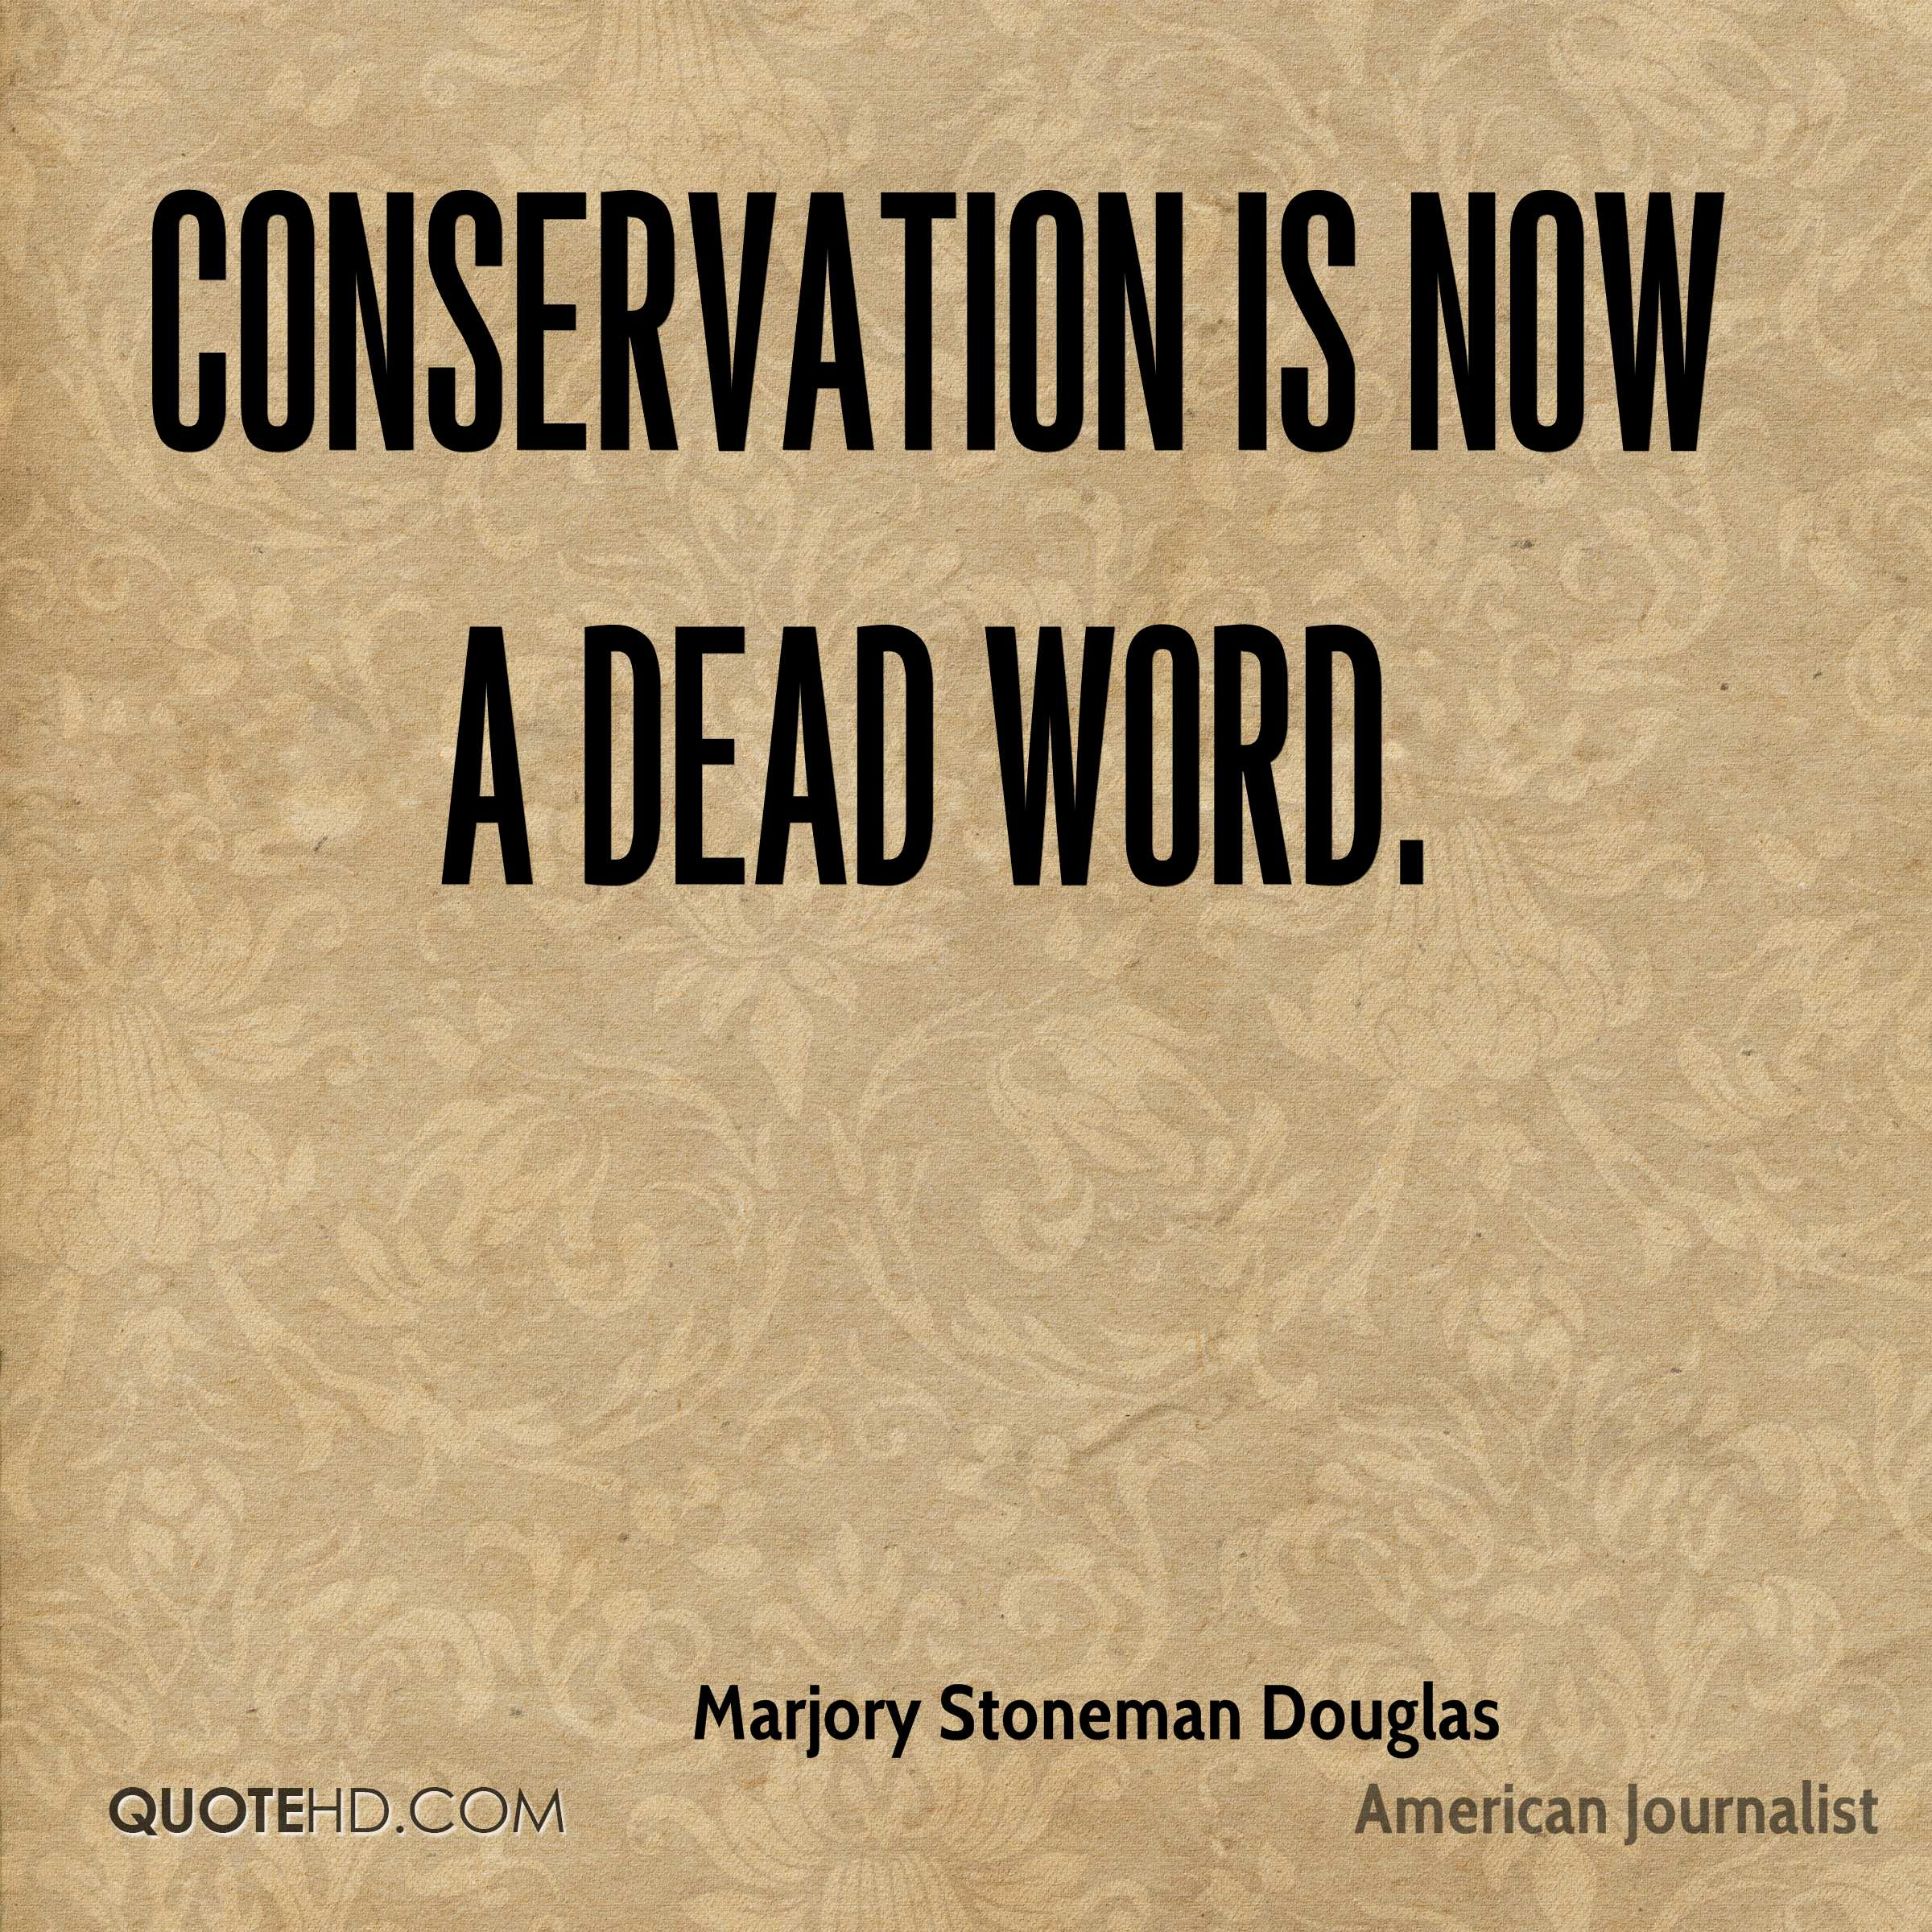 Conservation is now a dead word.